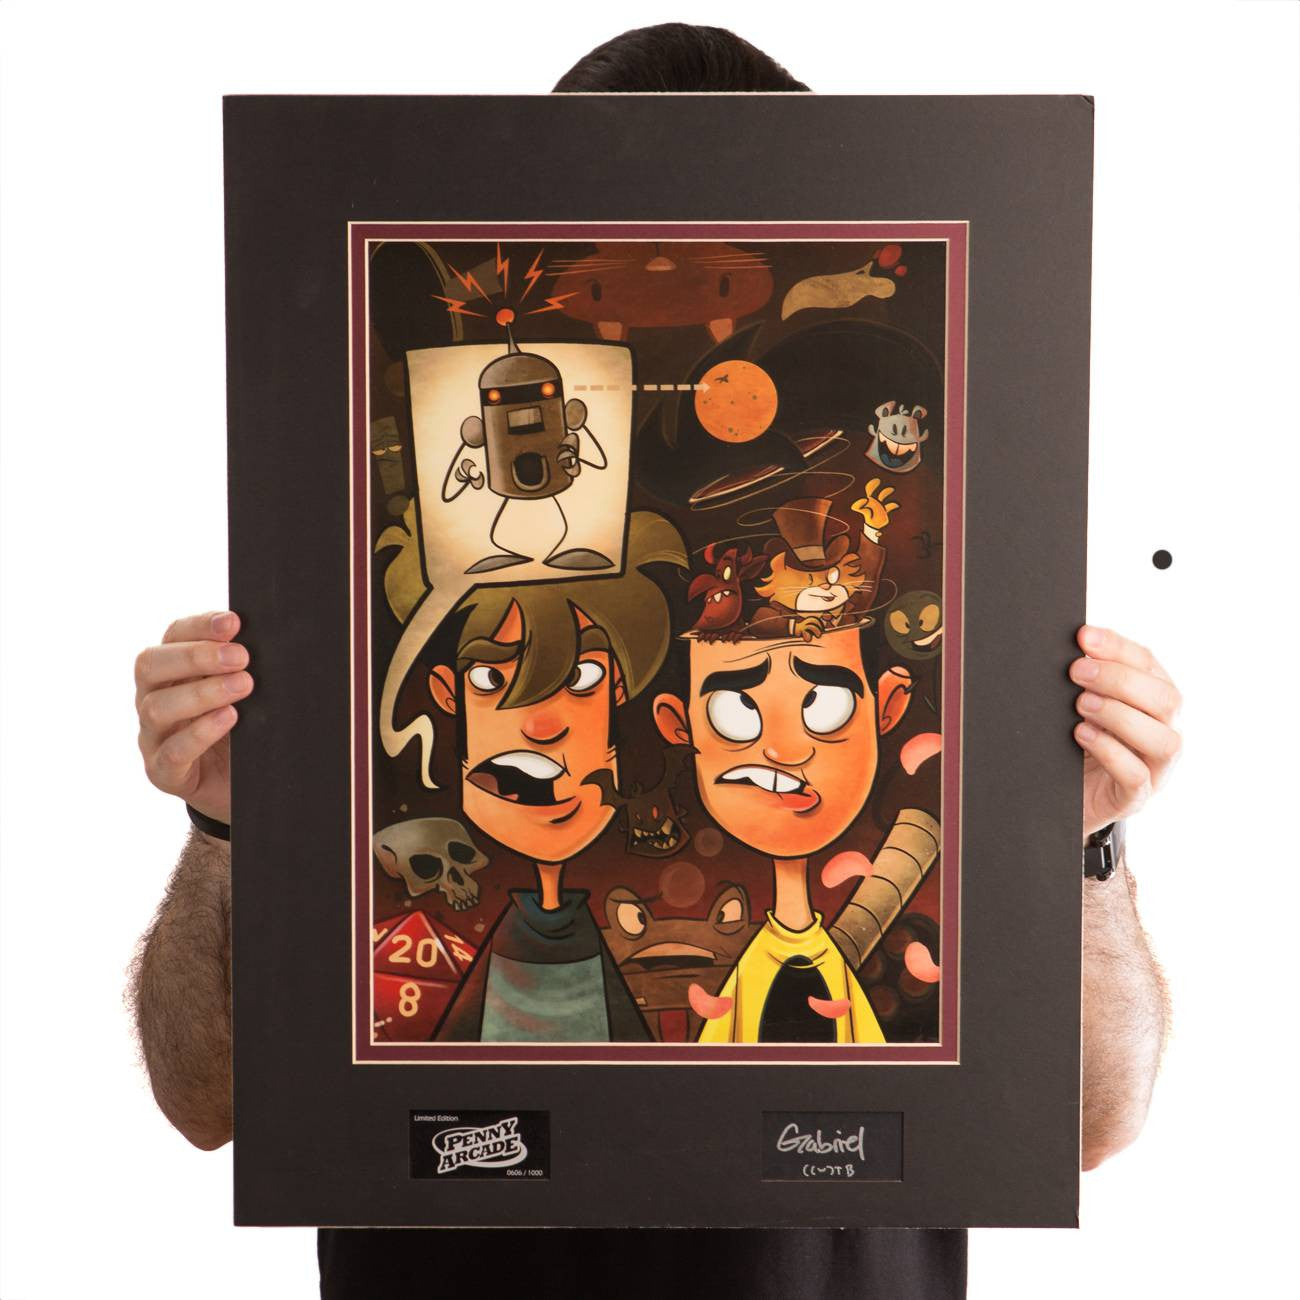 Penny Arcade Art Cel (Limited Edition)